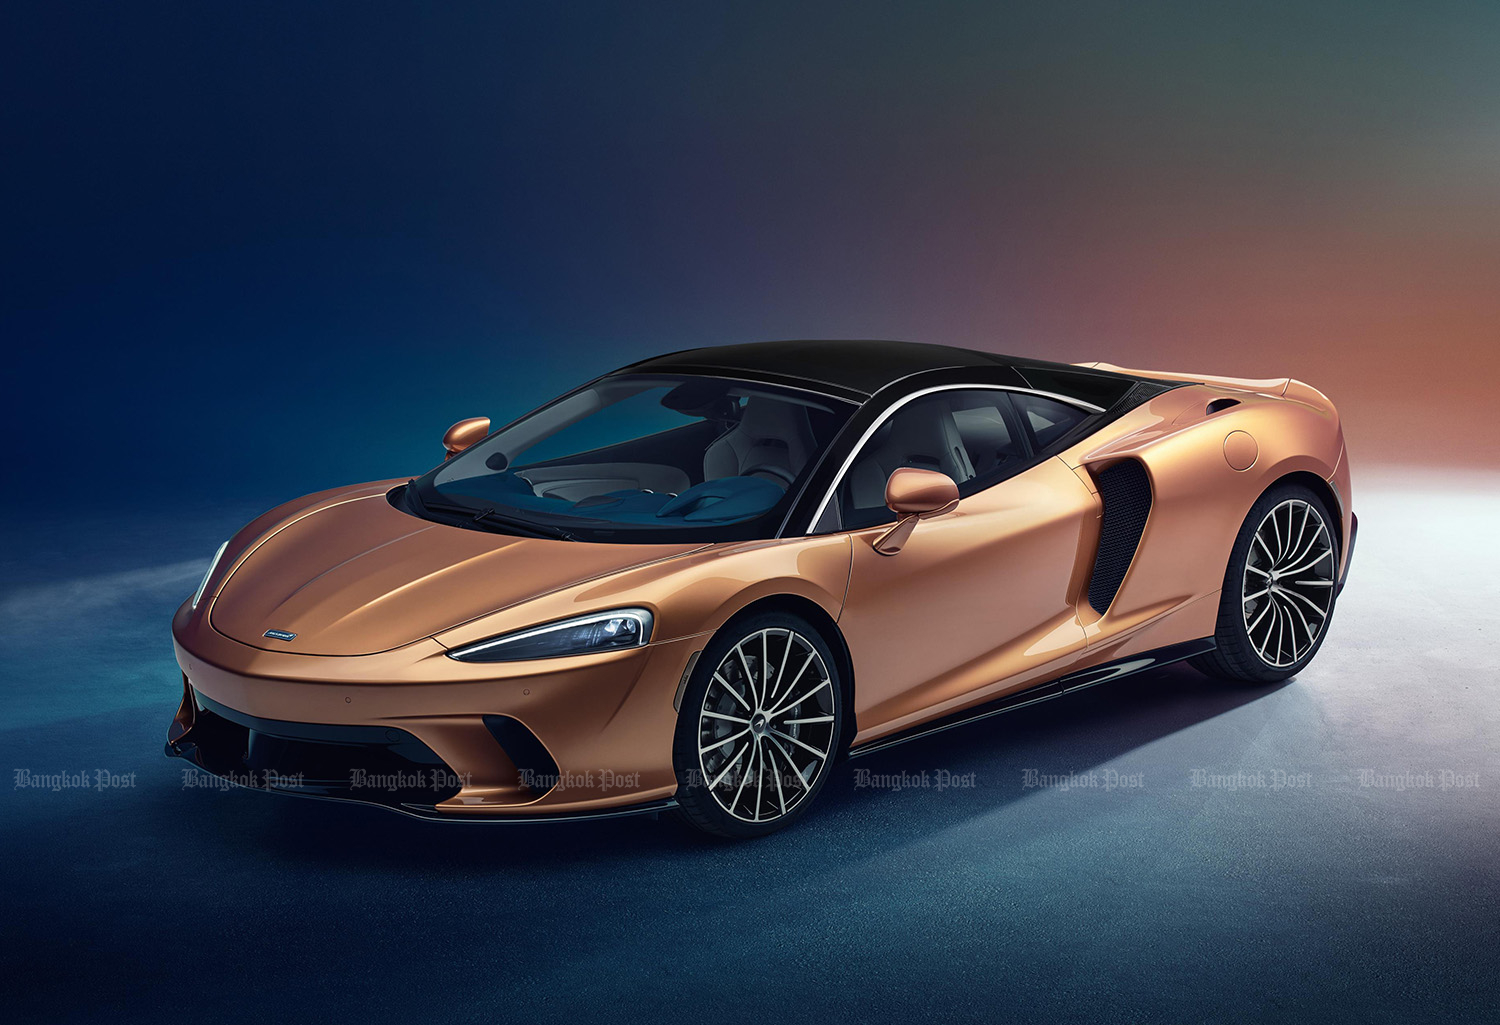 2019 McLaren GT aims for easygoing drivers